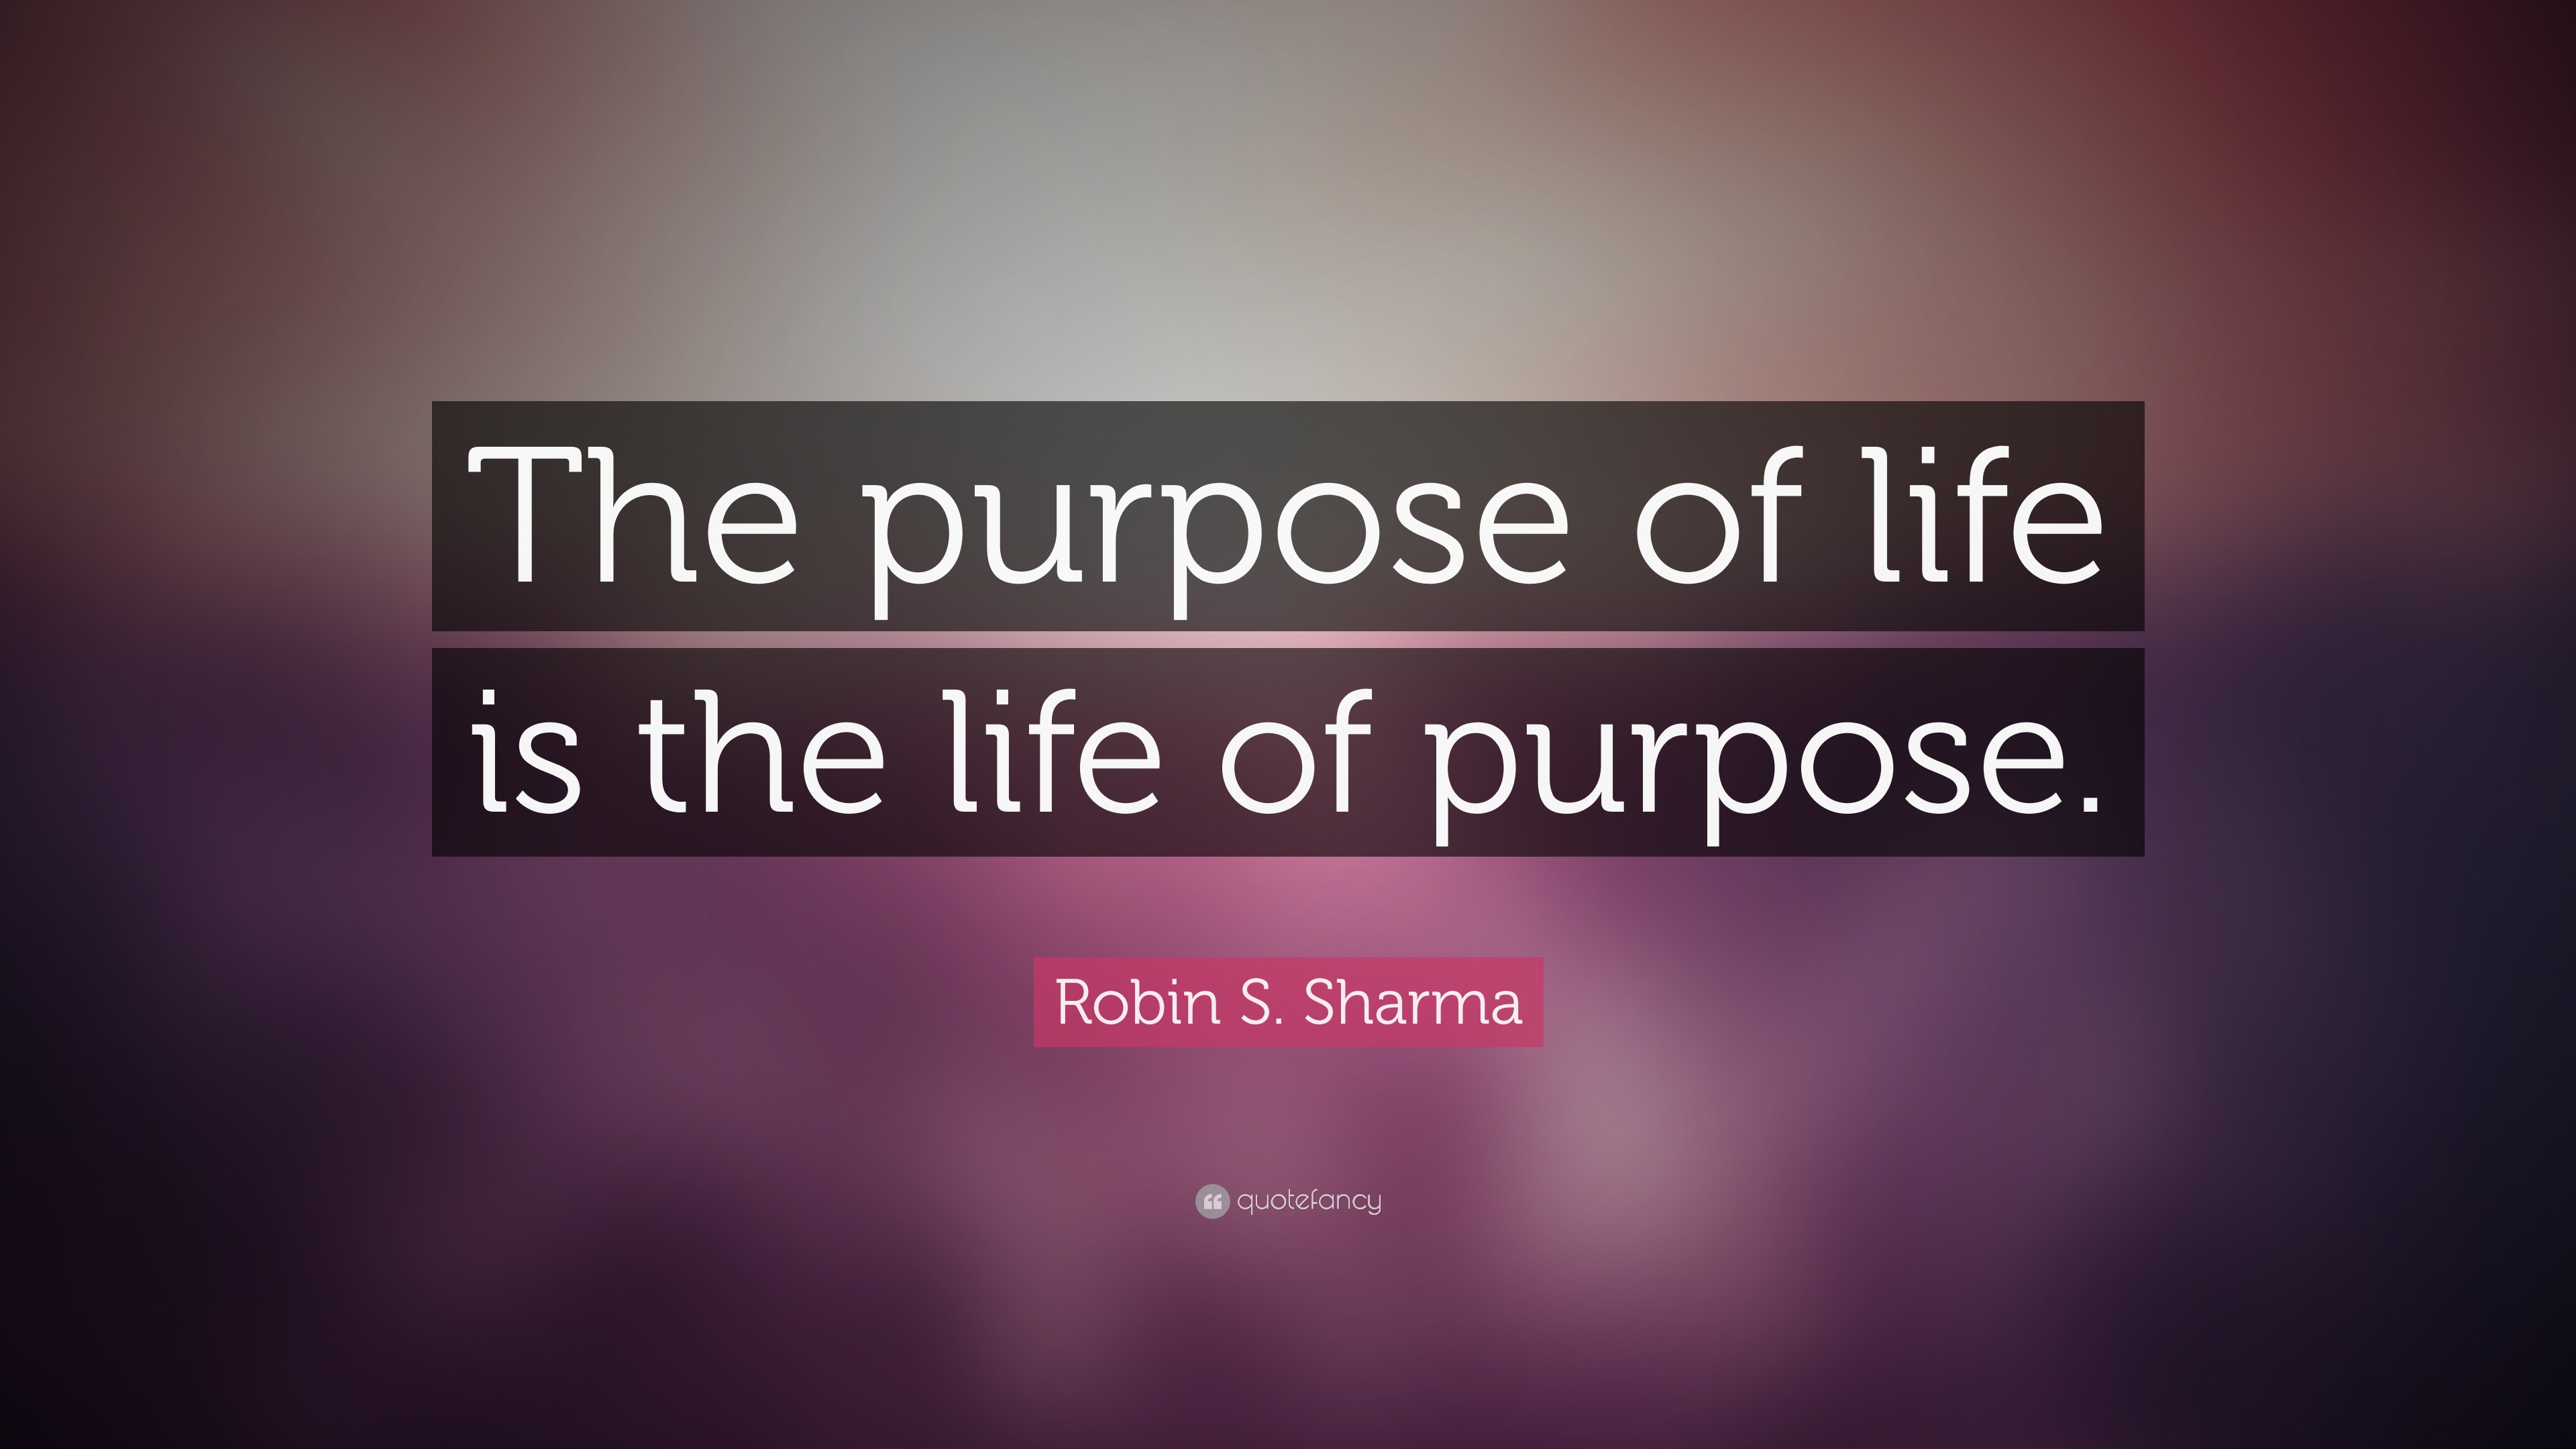 Life Purpose Quotes Purpose Of Life Quotes Simple Purpose Of Life Quotes 007 The Soul